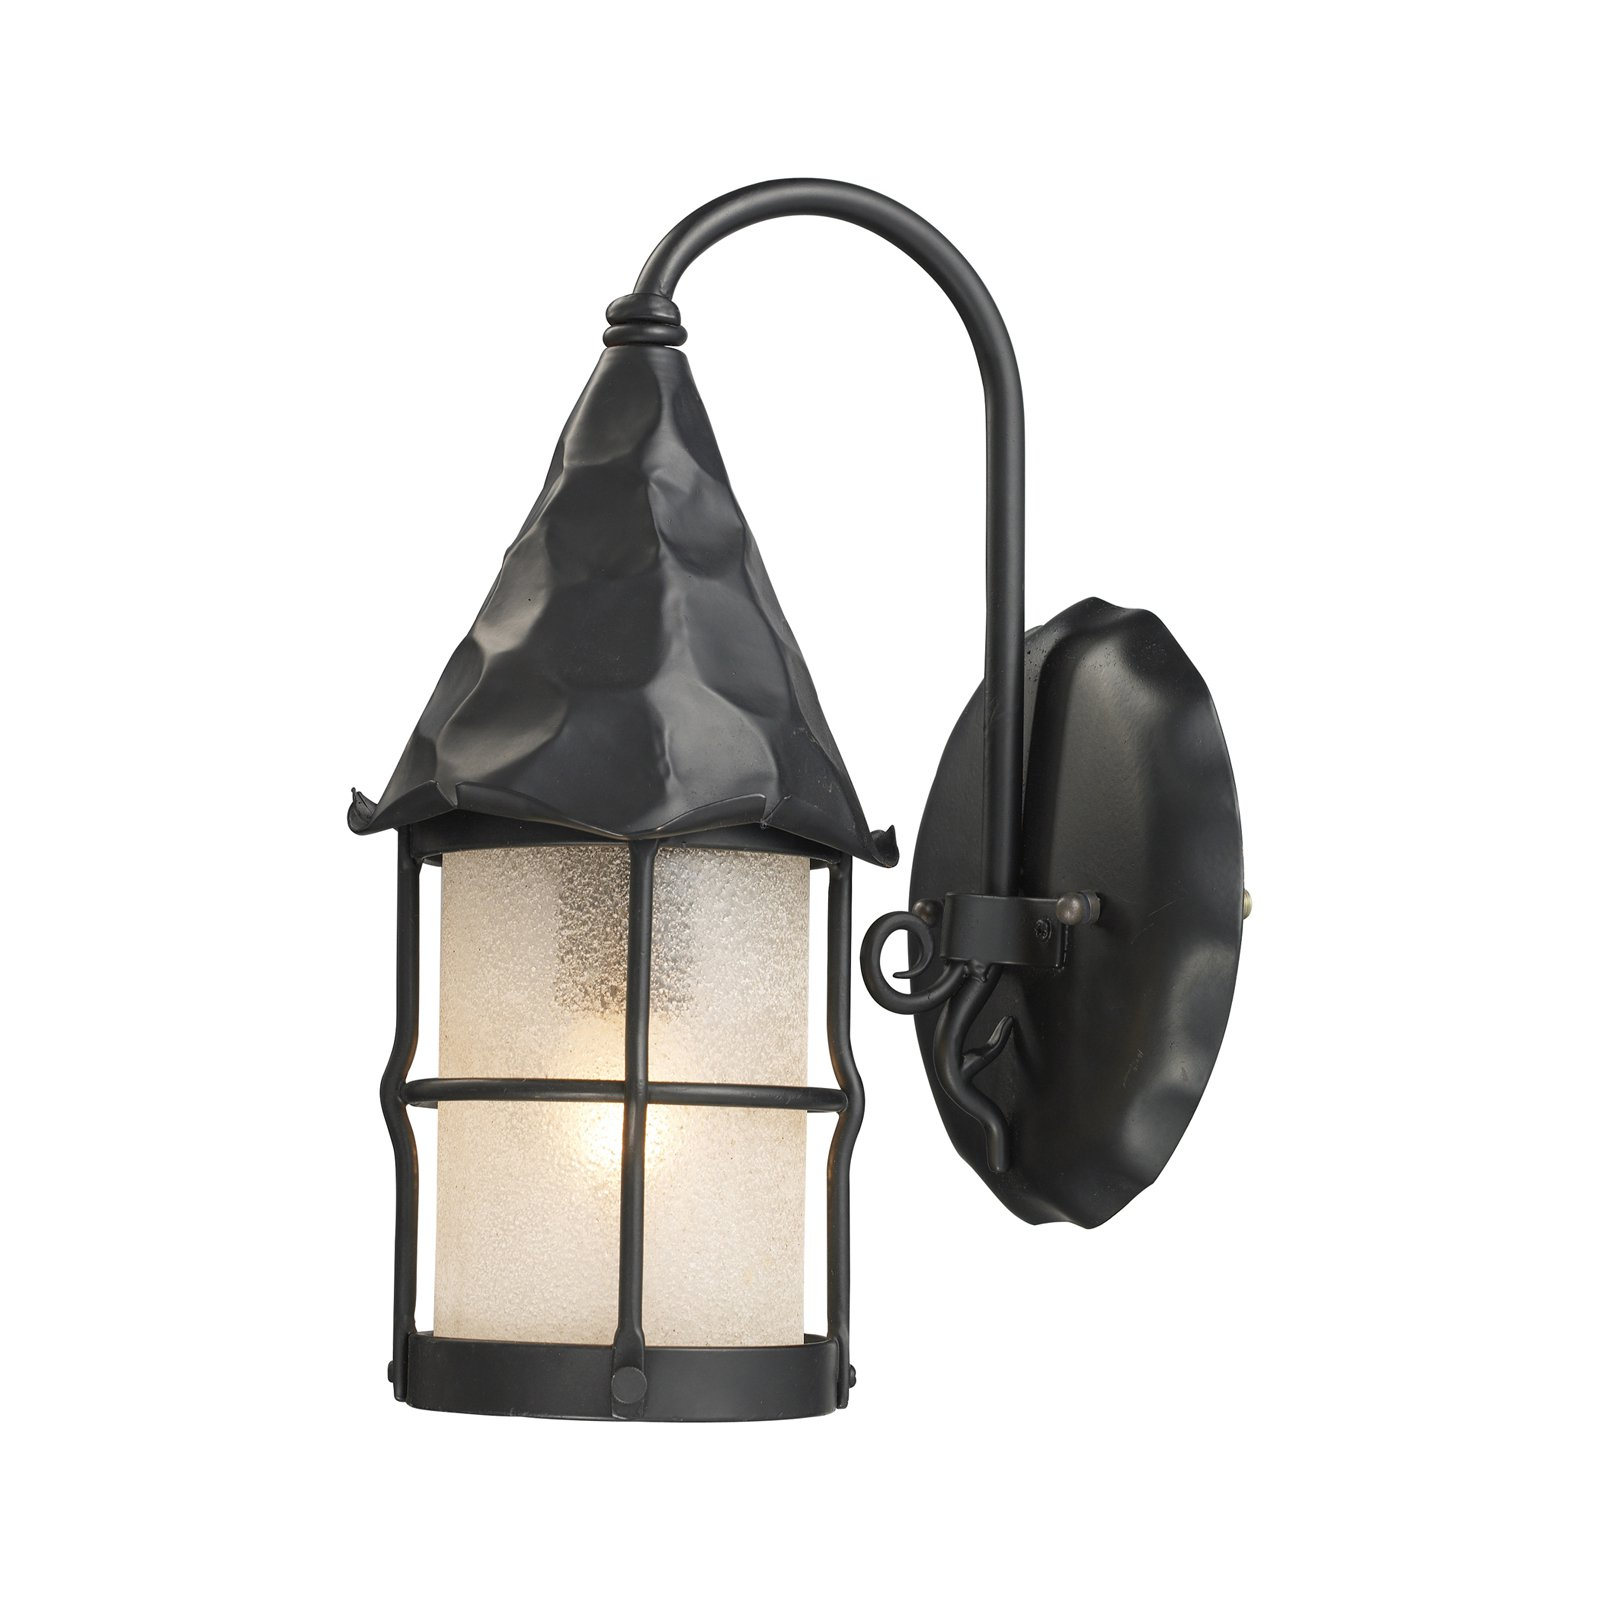 ELK Lighting Rustica 1-Light Outdoor Wall Sconce by Elk Lighting